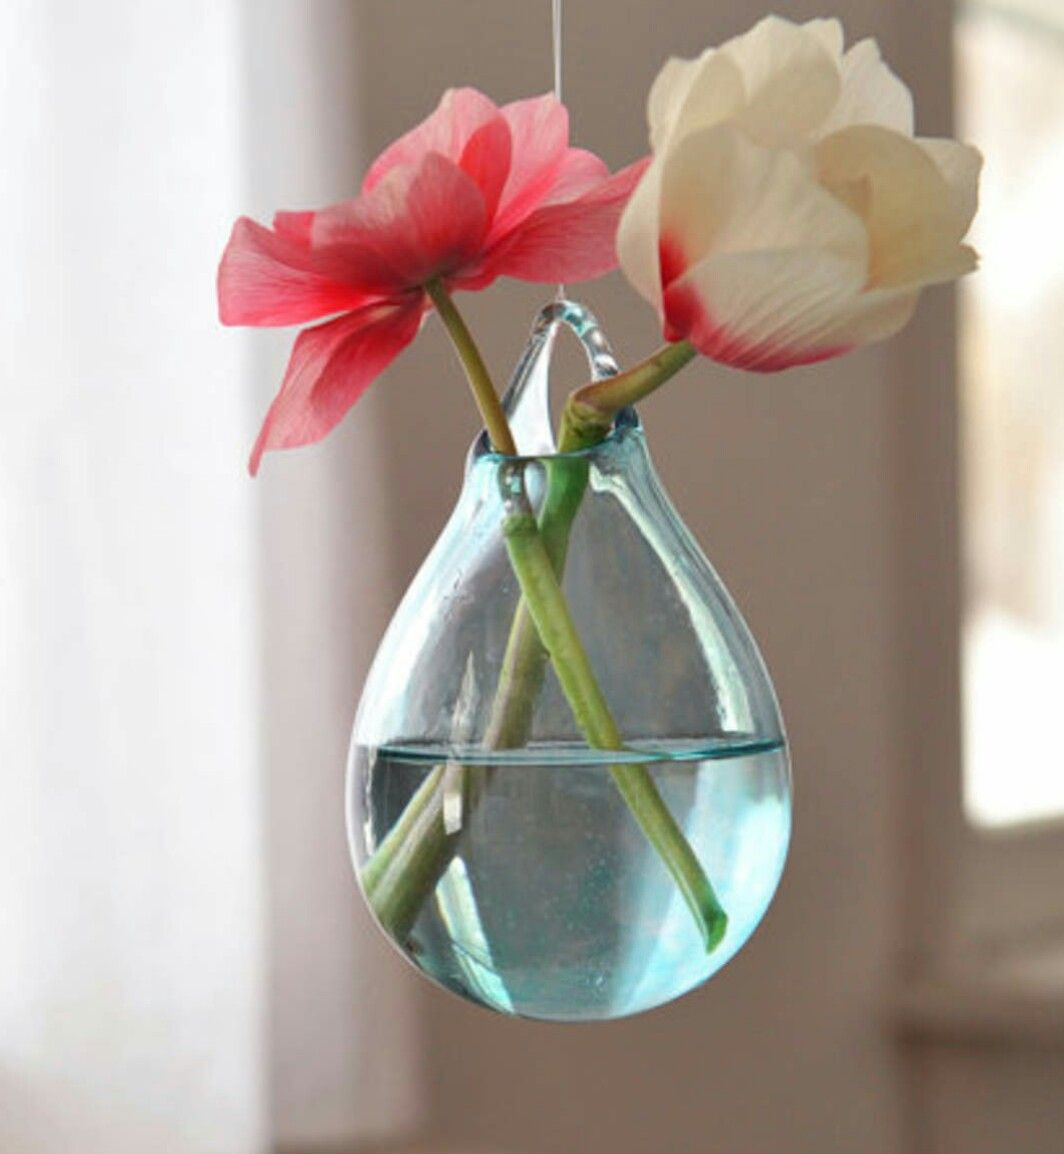 24 Great Decorative Flower Vase Online